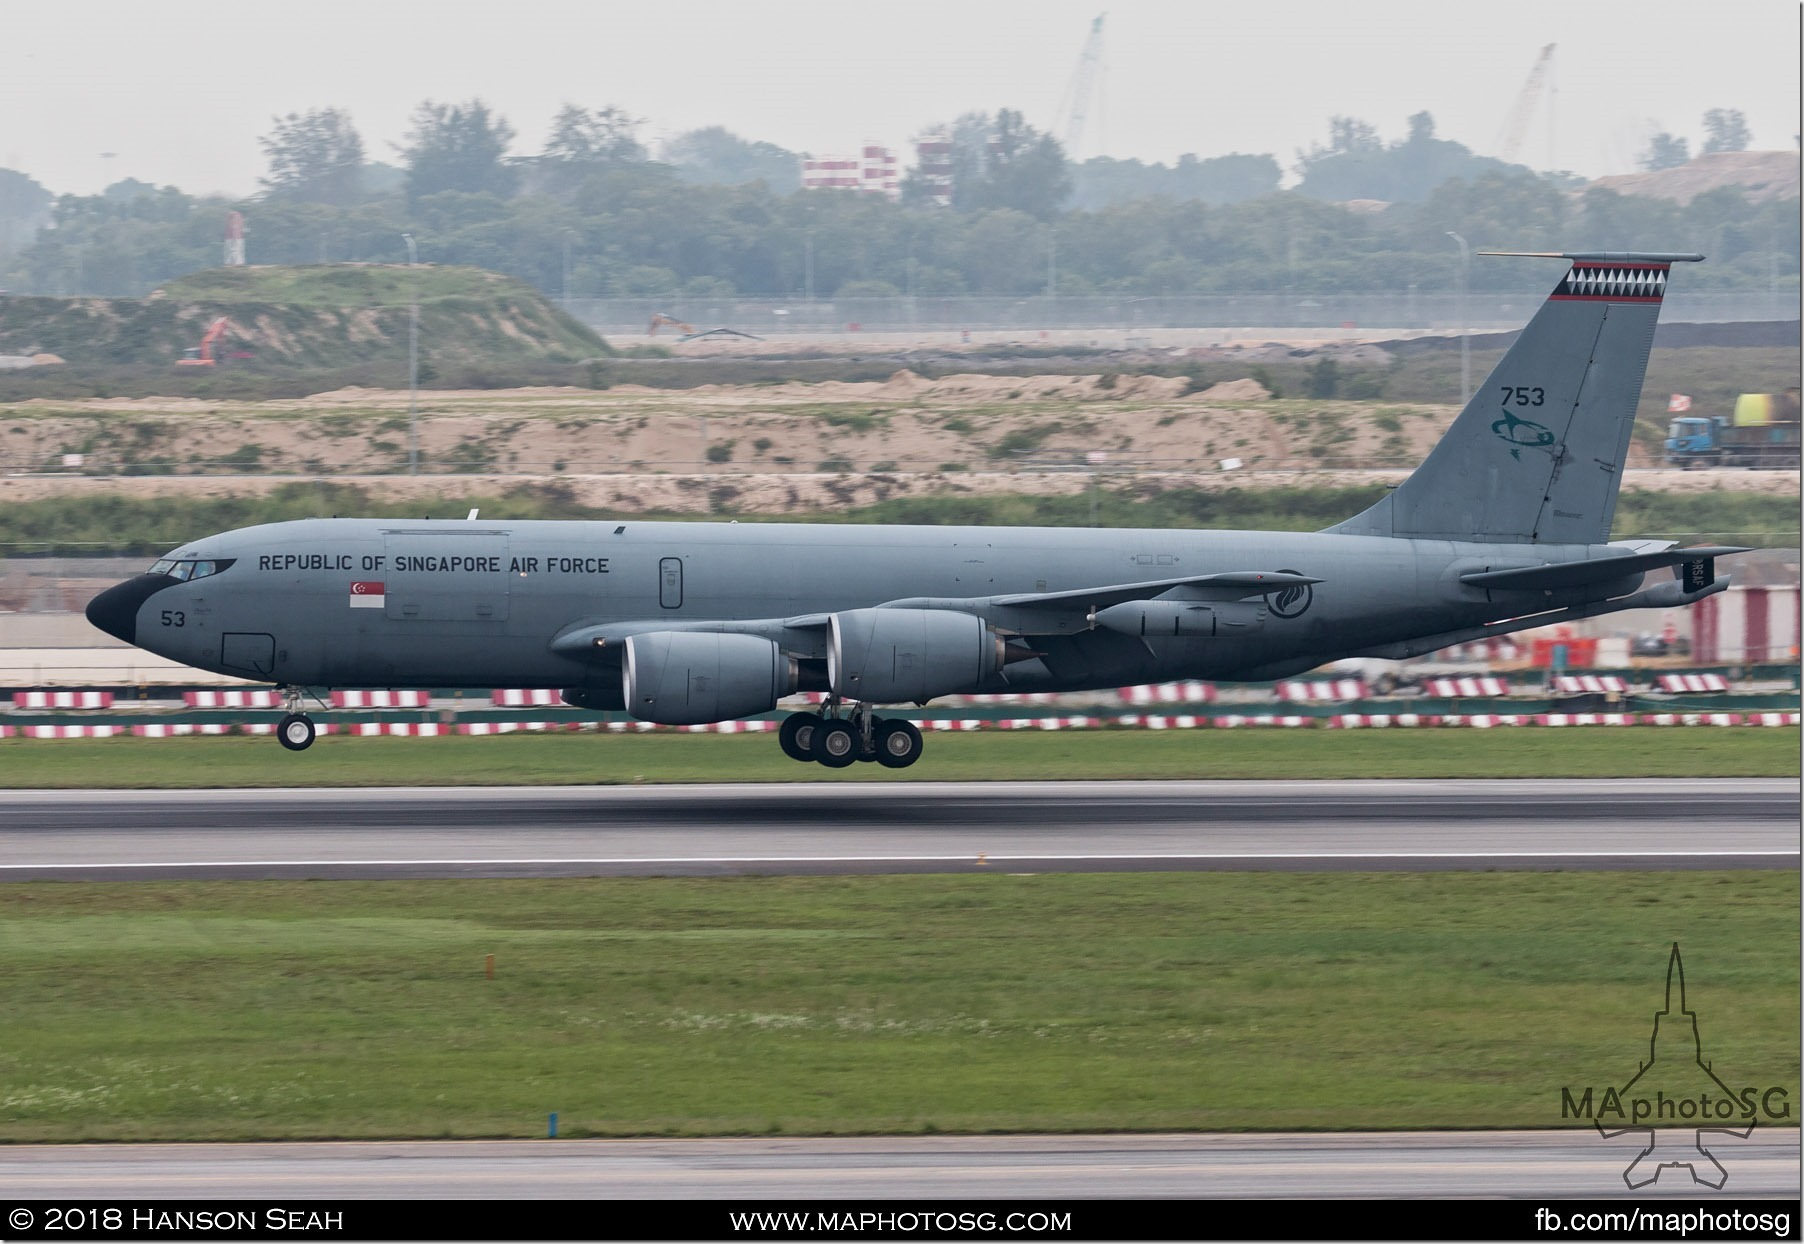 13. RSAF KC-135R Stratotanker returning to Changi Air Base